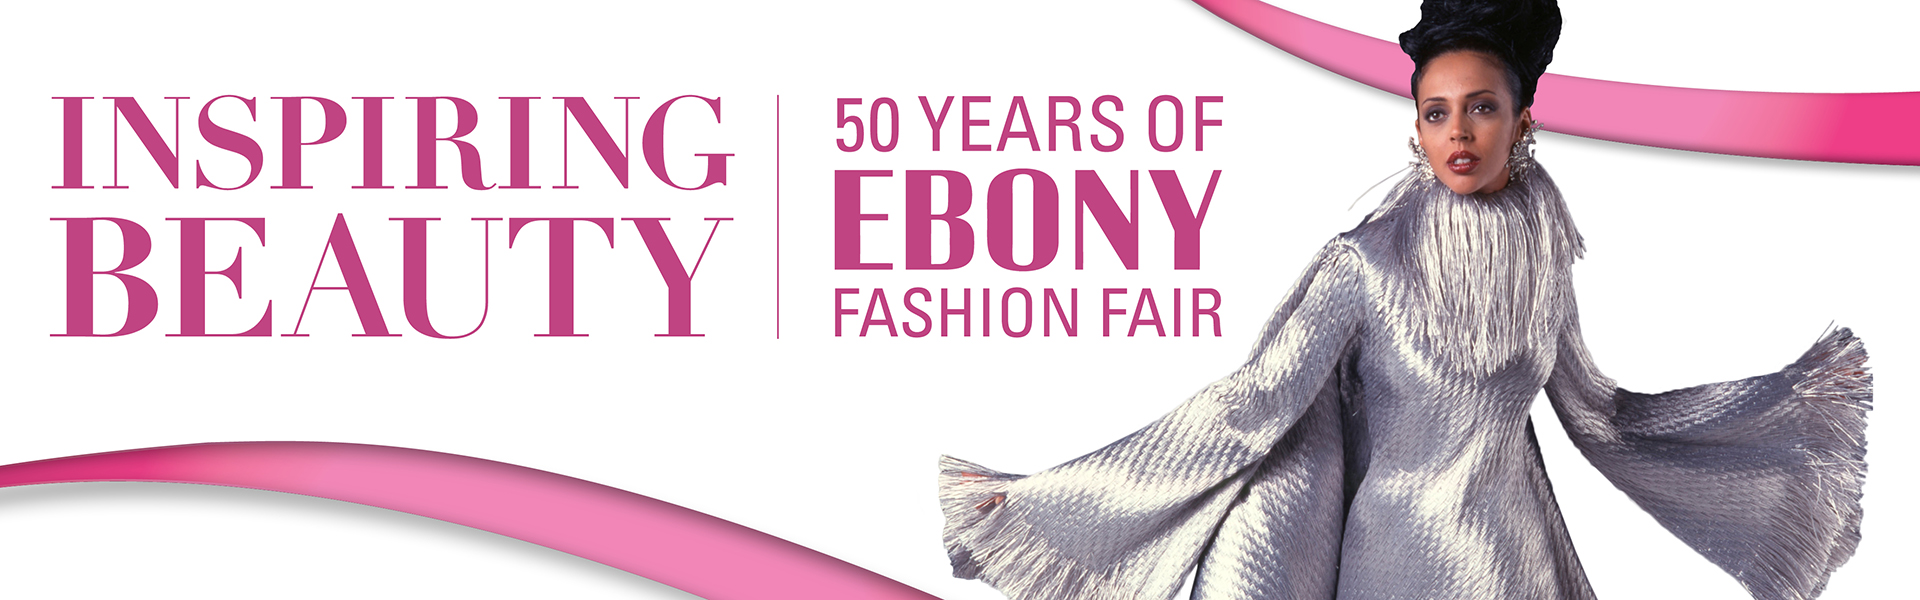 inspiring beauty: 50 years of ebony fashion